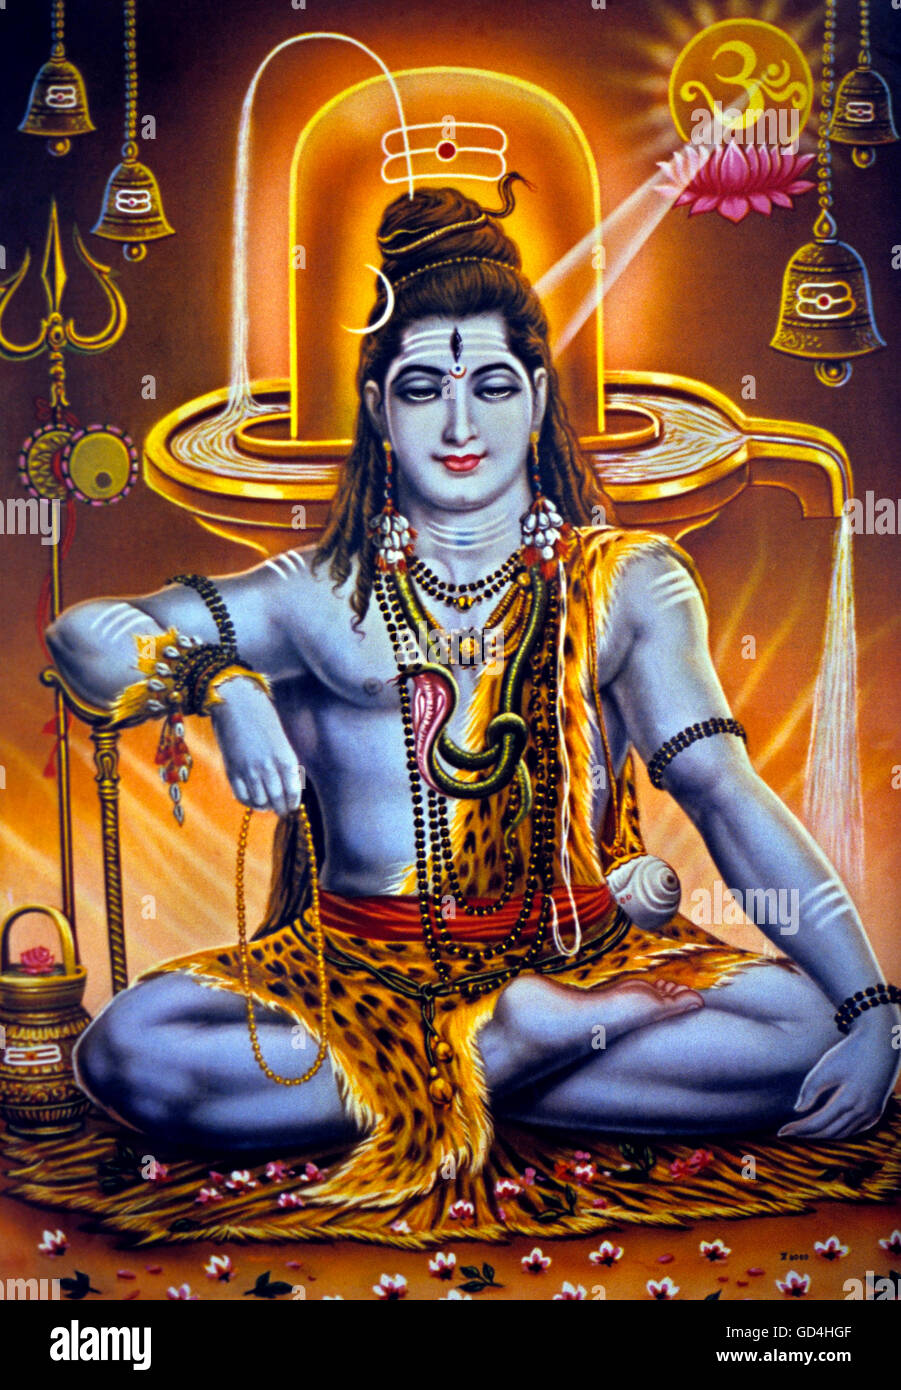 Poster of Shiva - Stock Image